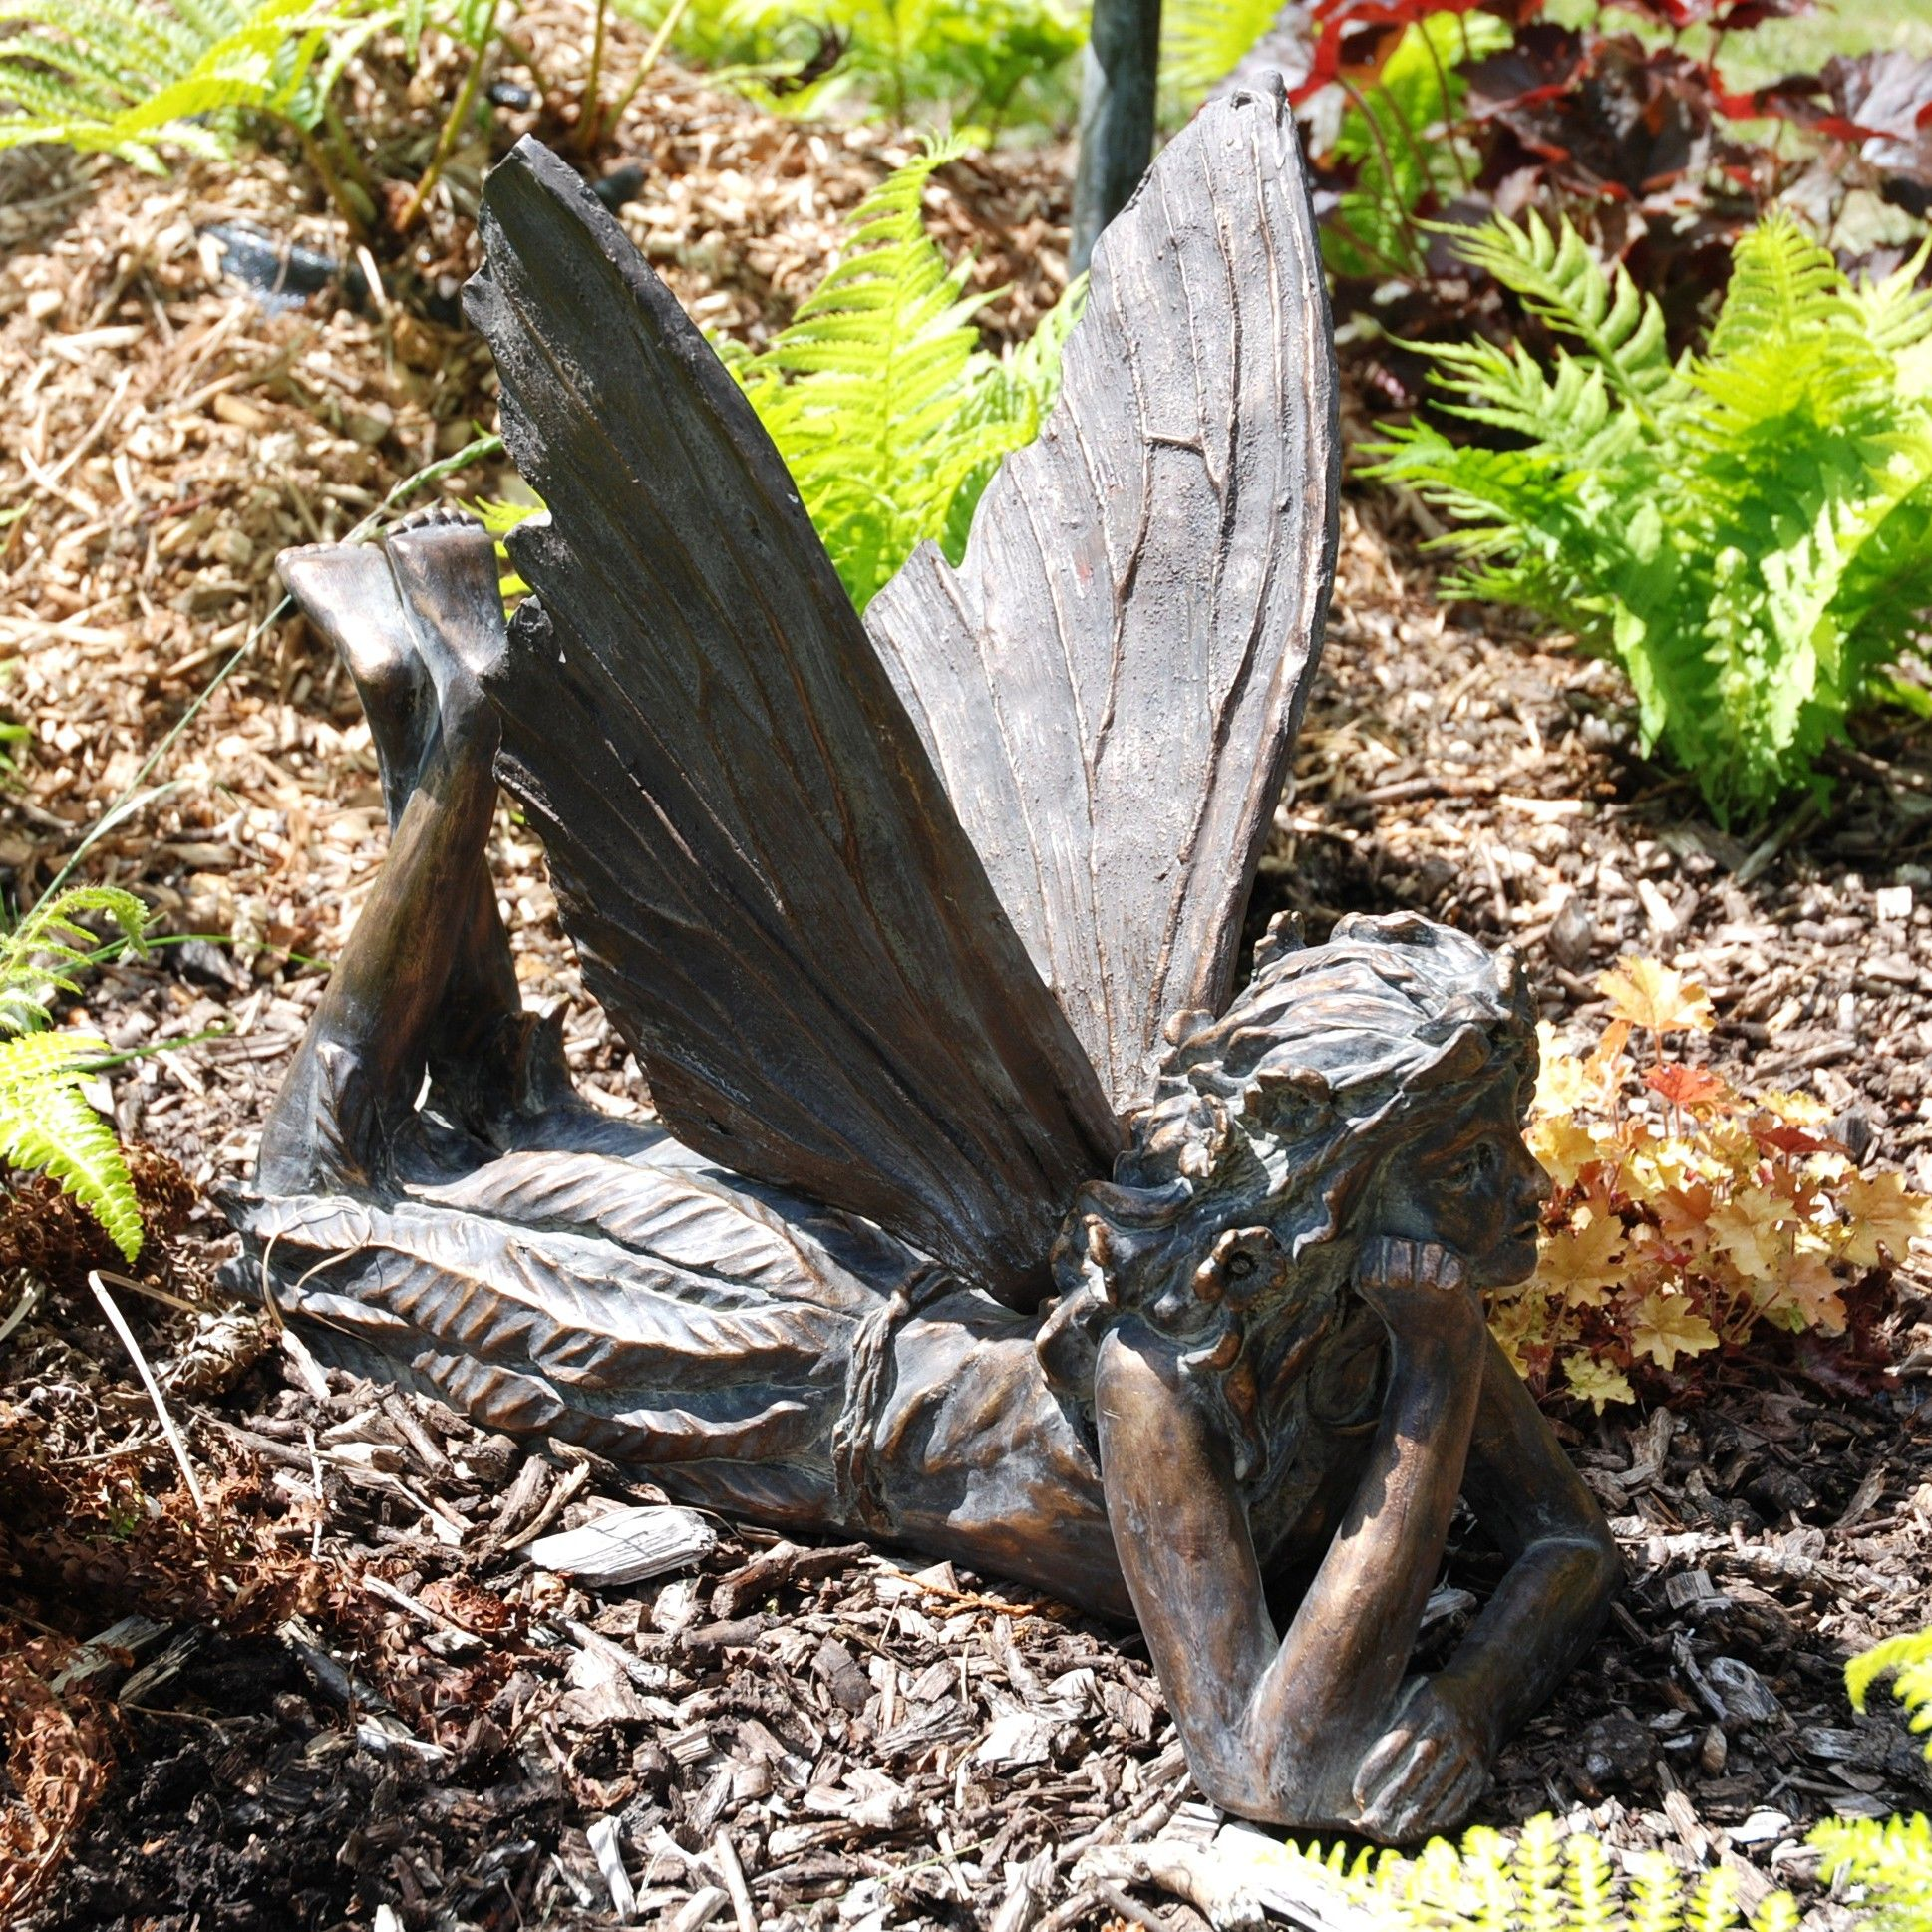 Beautiful View The Contemplating Fairy Antique Bronze Sculpture   Large Garden  Ornament. Or See Our Full Range Of Exquisite Unique To Statues U0026 Sculptures  Online.